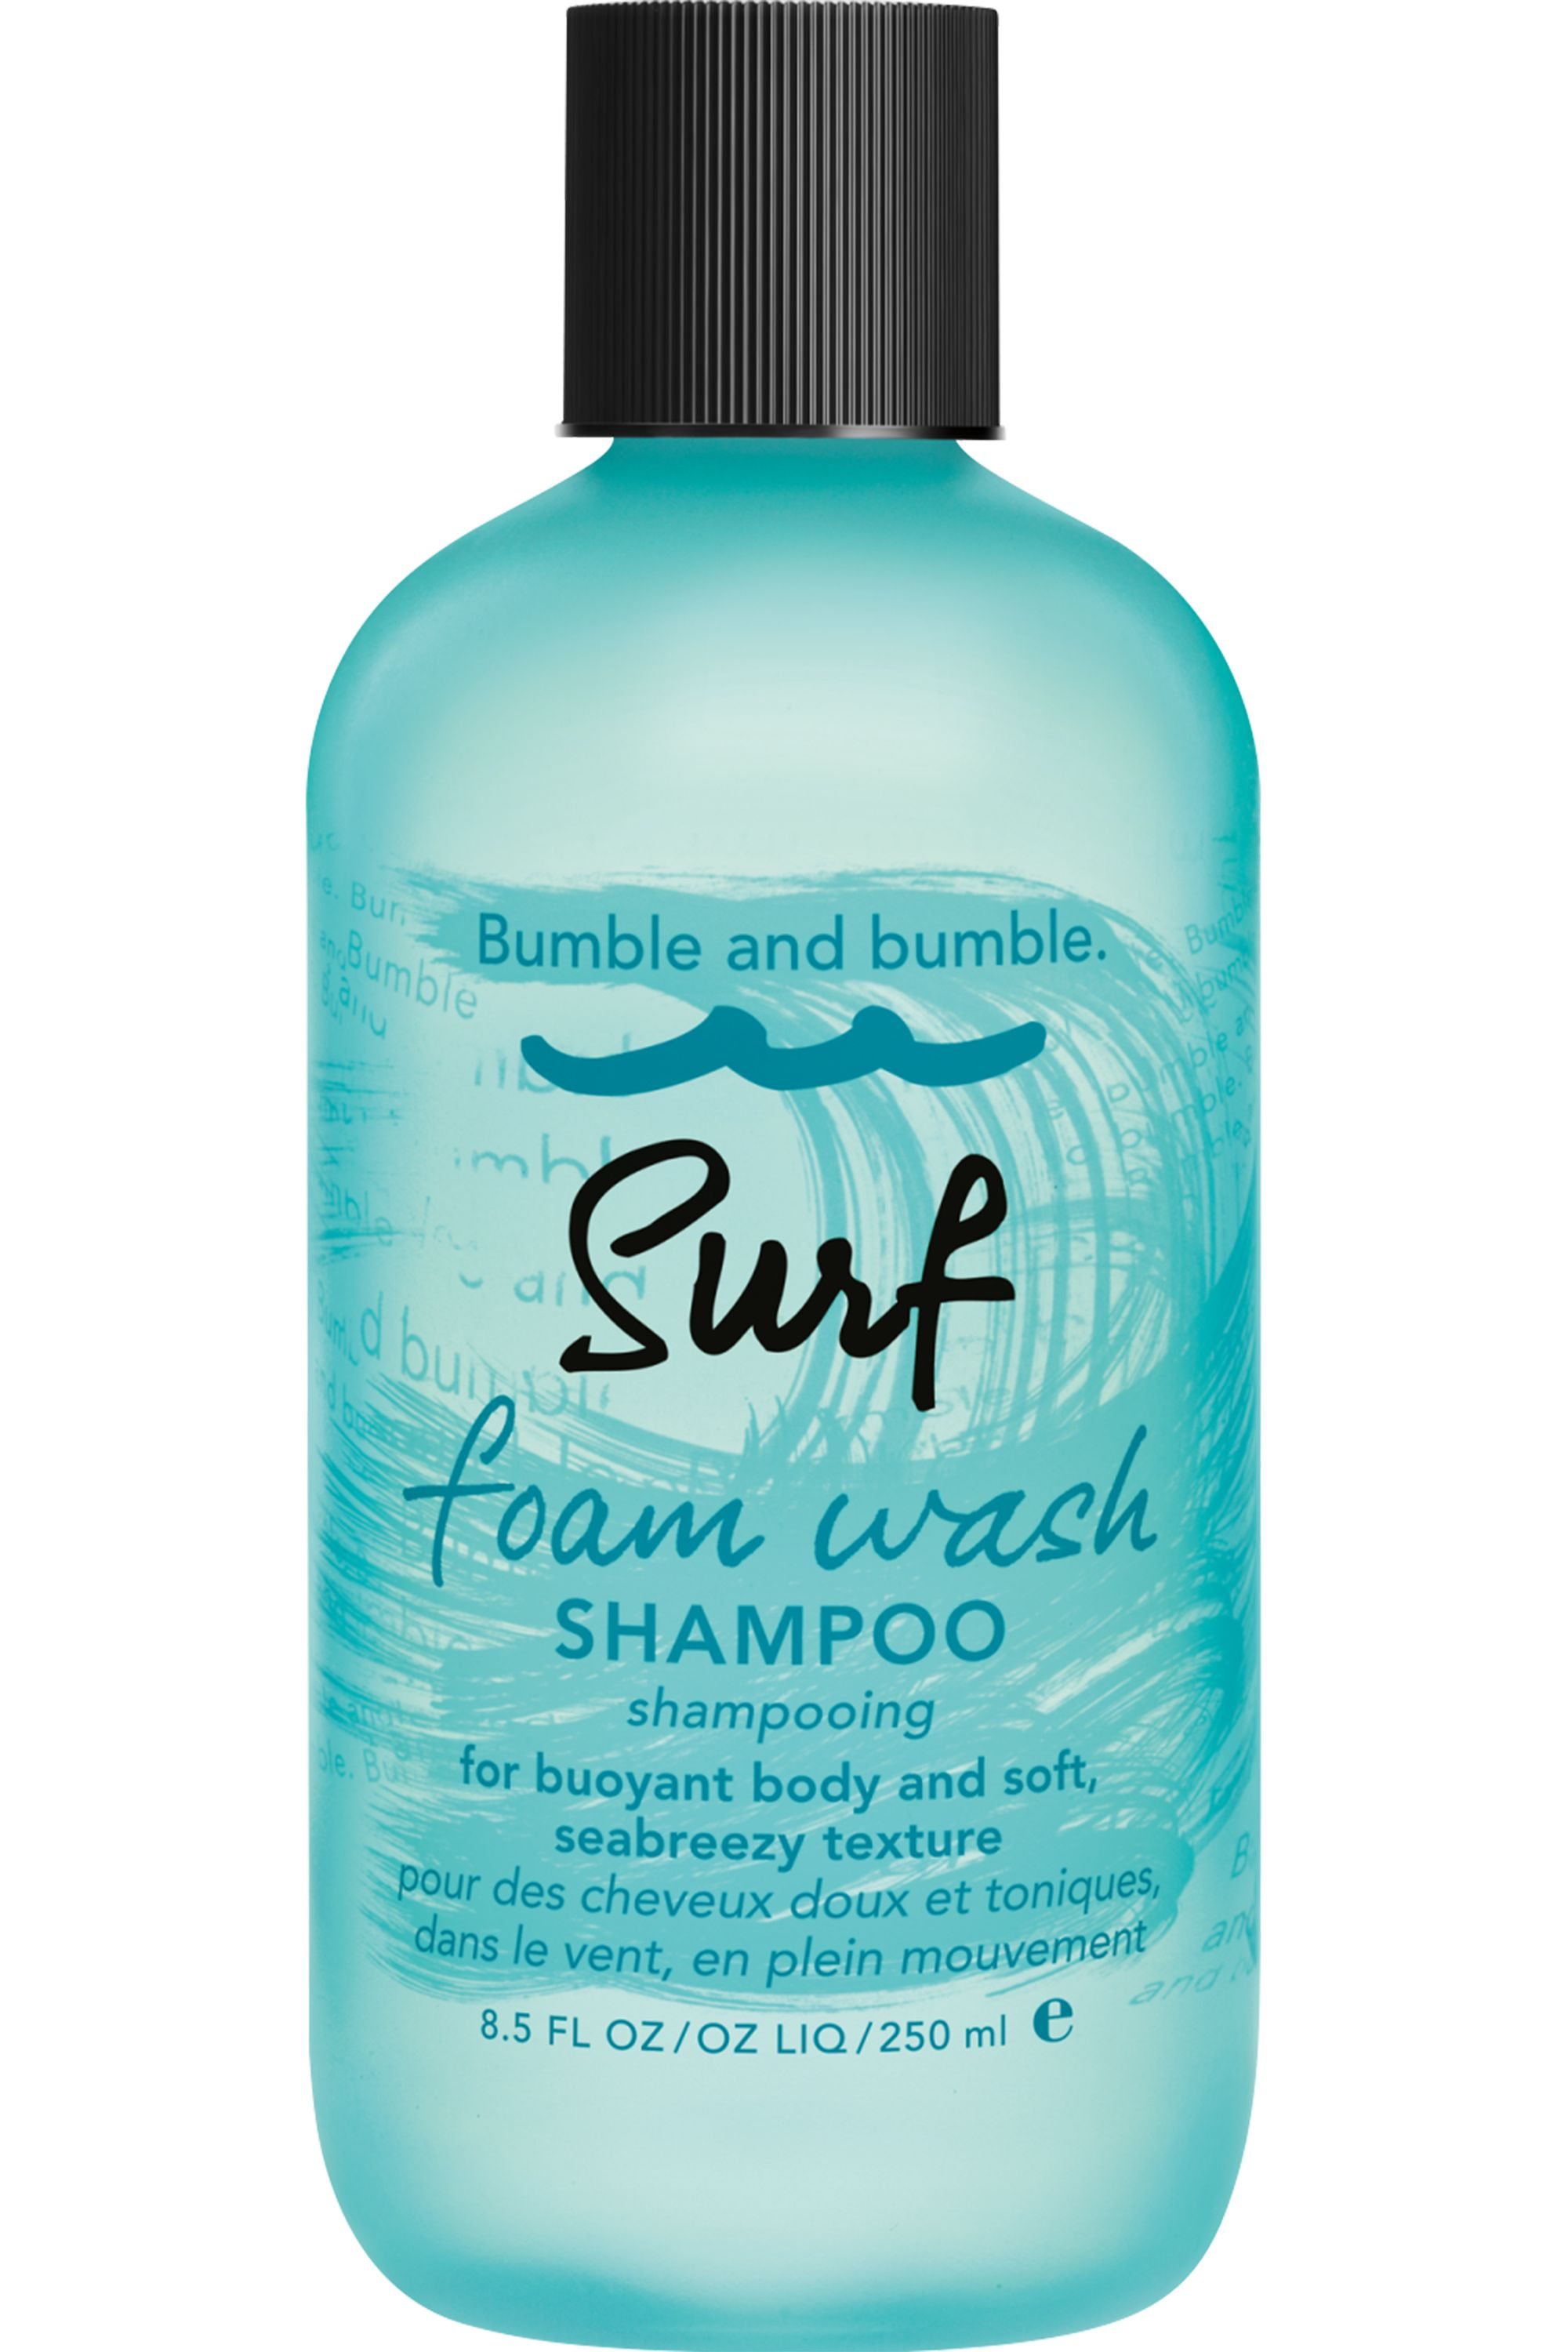 Blissim : Bumble and bumble. - Shampoing purifiant Surf Foam Wash - Shampoing purifiant Surf Foam Wash